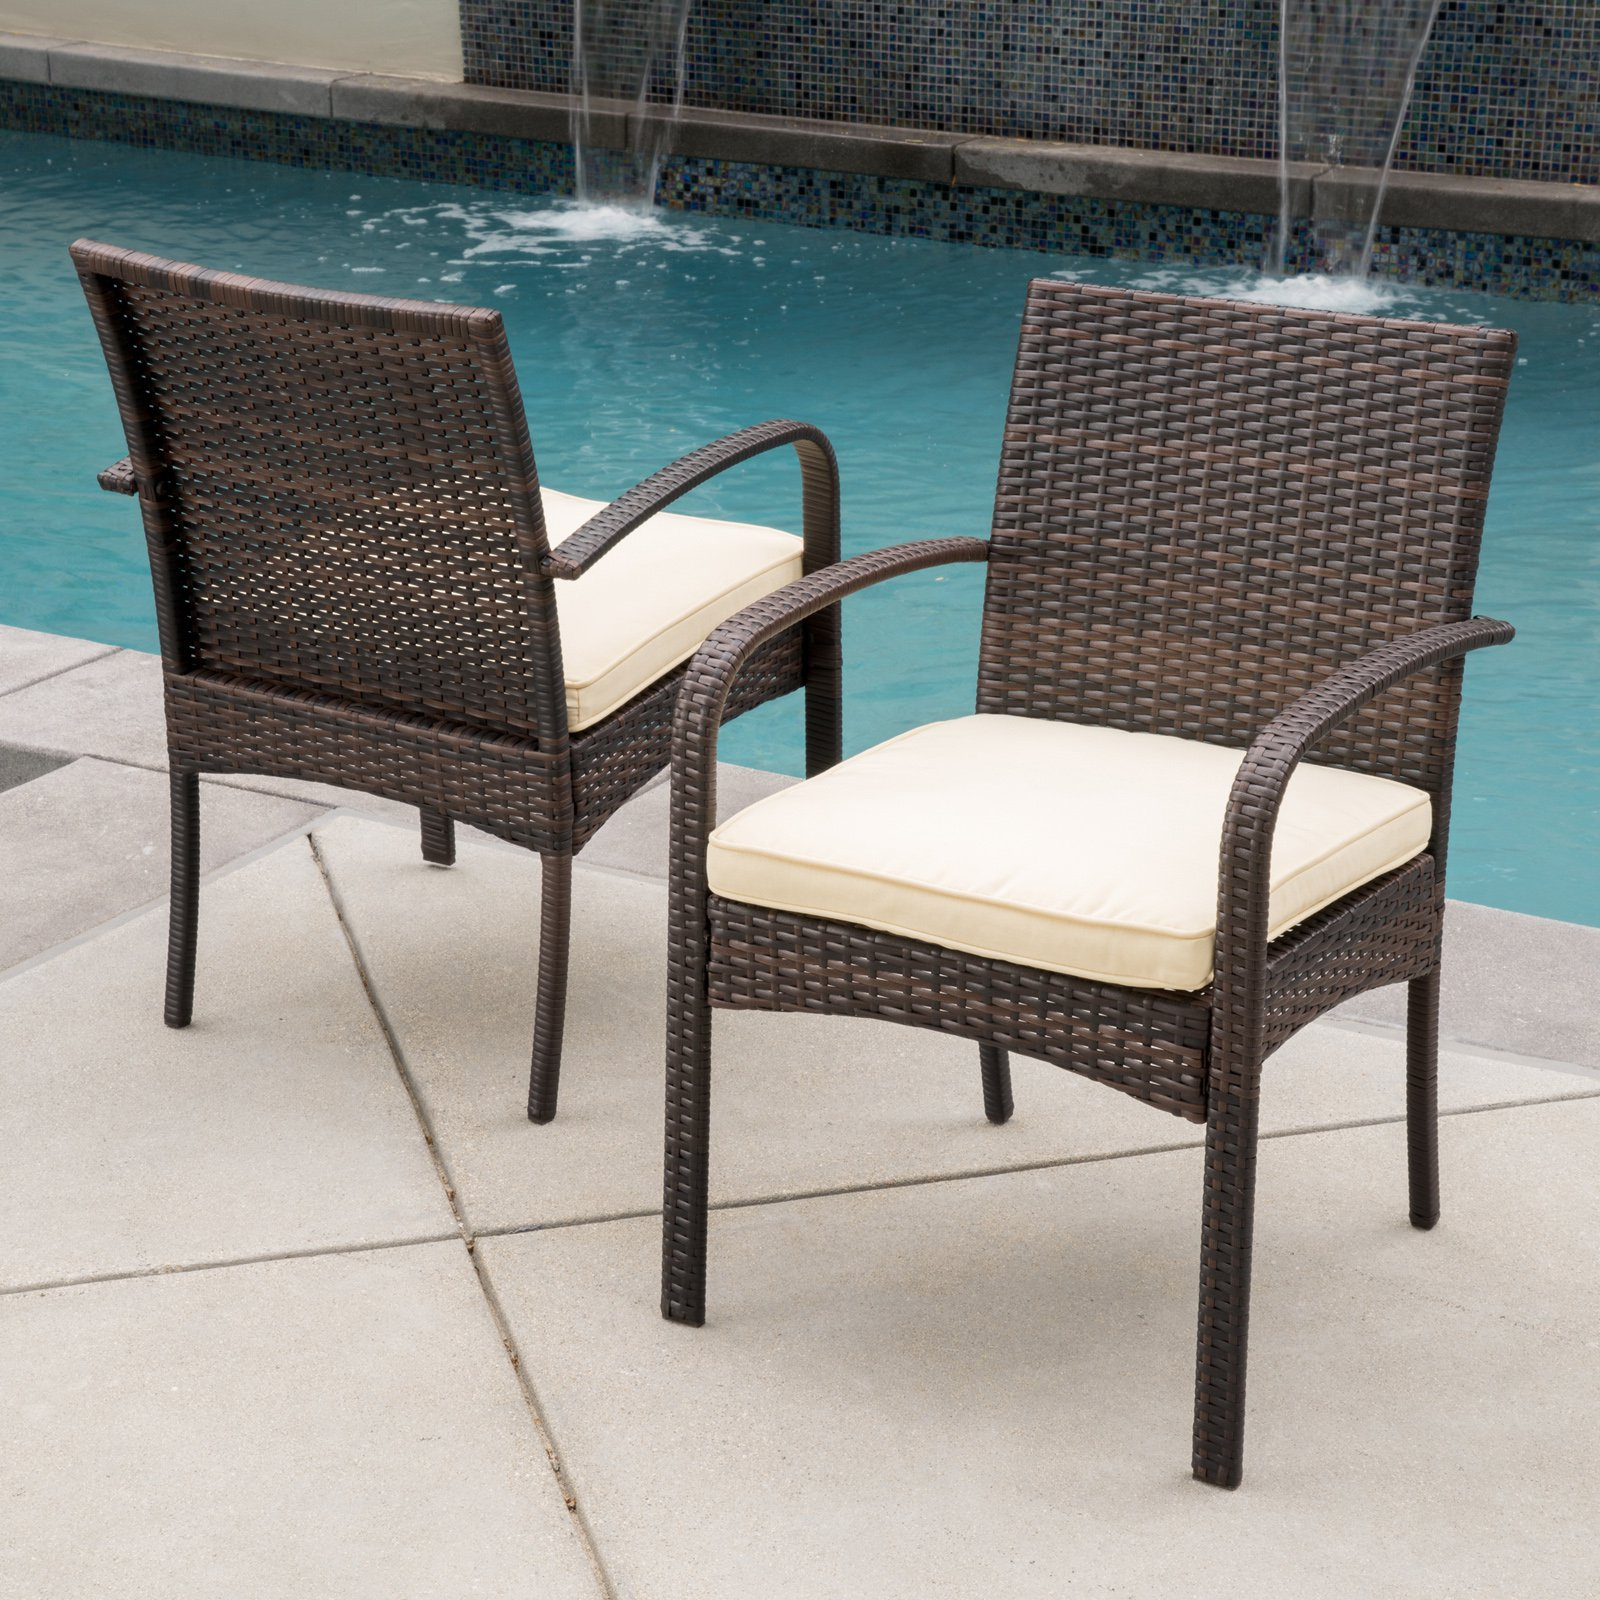 Outdoor Chairs Patio Chairs And Stools Walmart